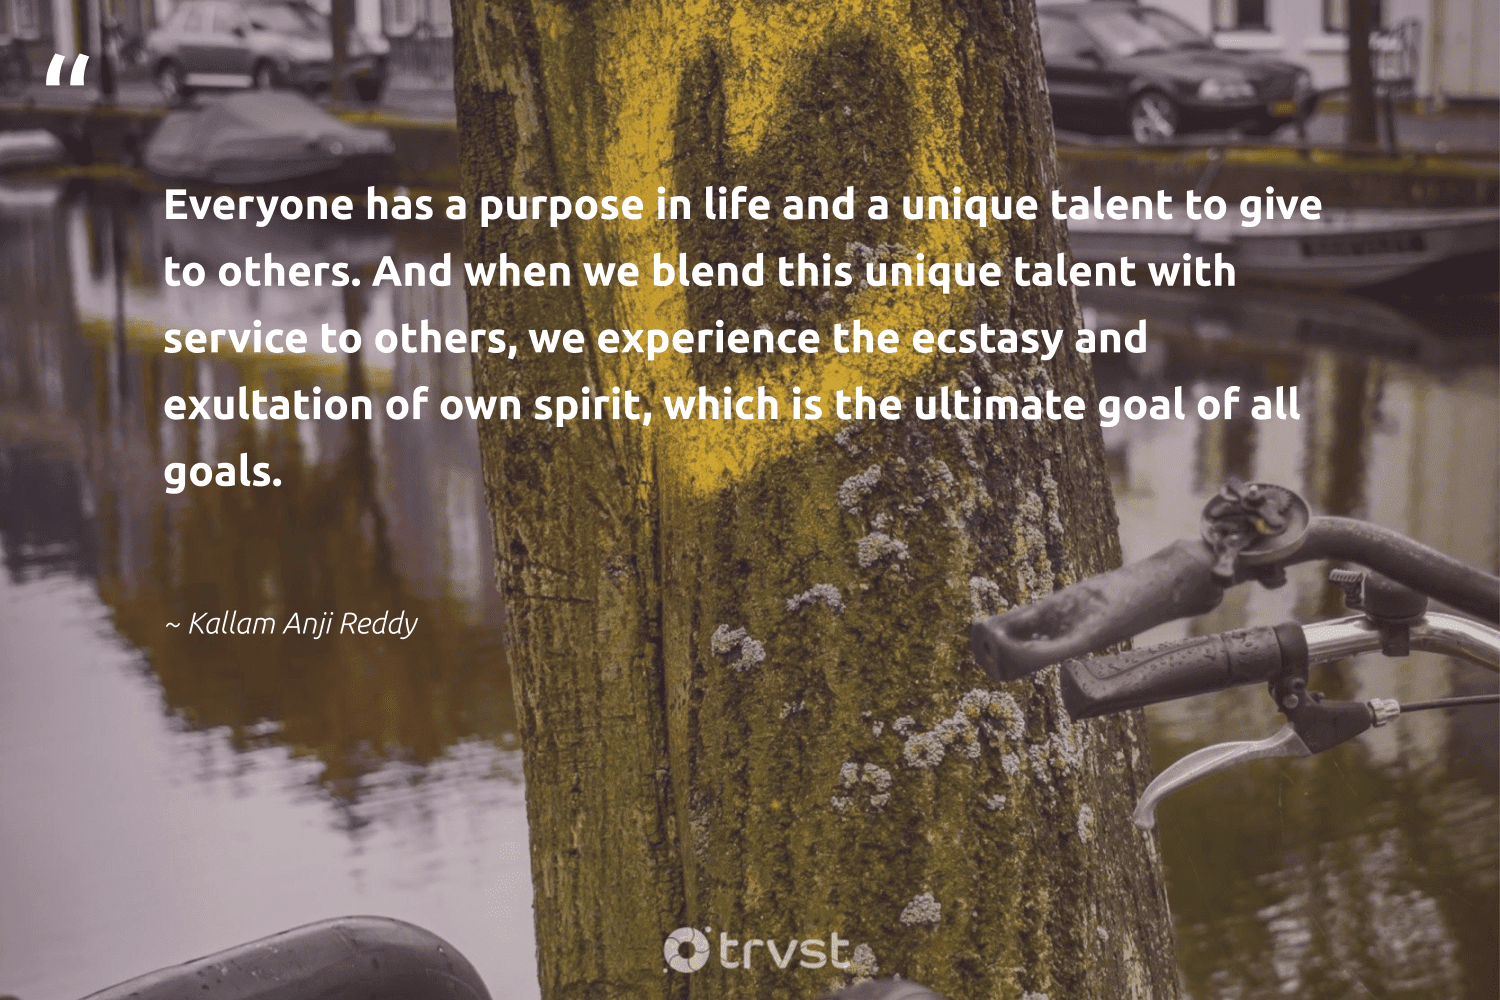 """""""Everyone has a purpose in life and a unique talent to give to others. And when we blend this unique talent with service to others, we experience the ecstasy and exultation of own spirit, which is the ultimate goal of all goals.""""  - Kallam Anji Reddy #trvst #quotes #mindset #goals #purpose #talent #entrepreneurmindset #begreat #togetherwecan #takeaction #positivity #nevergiveup"""